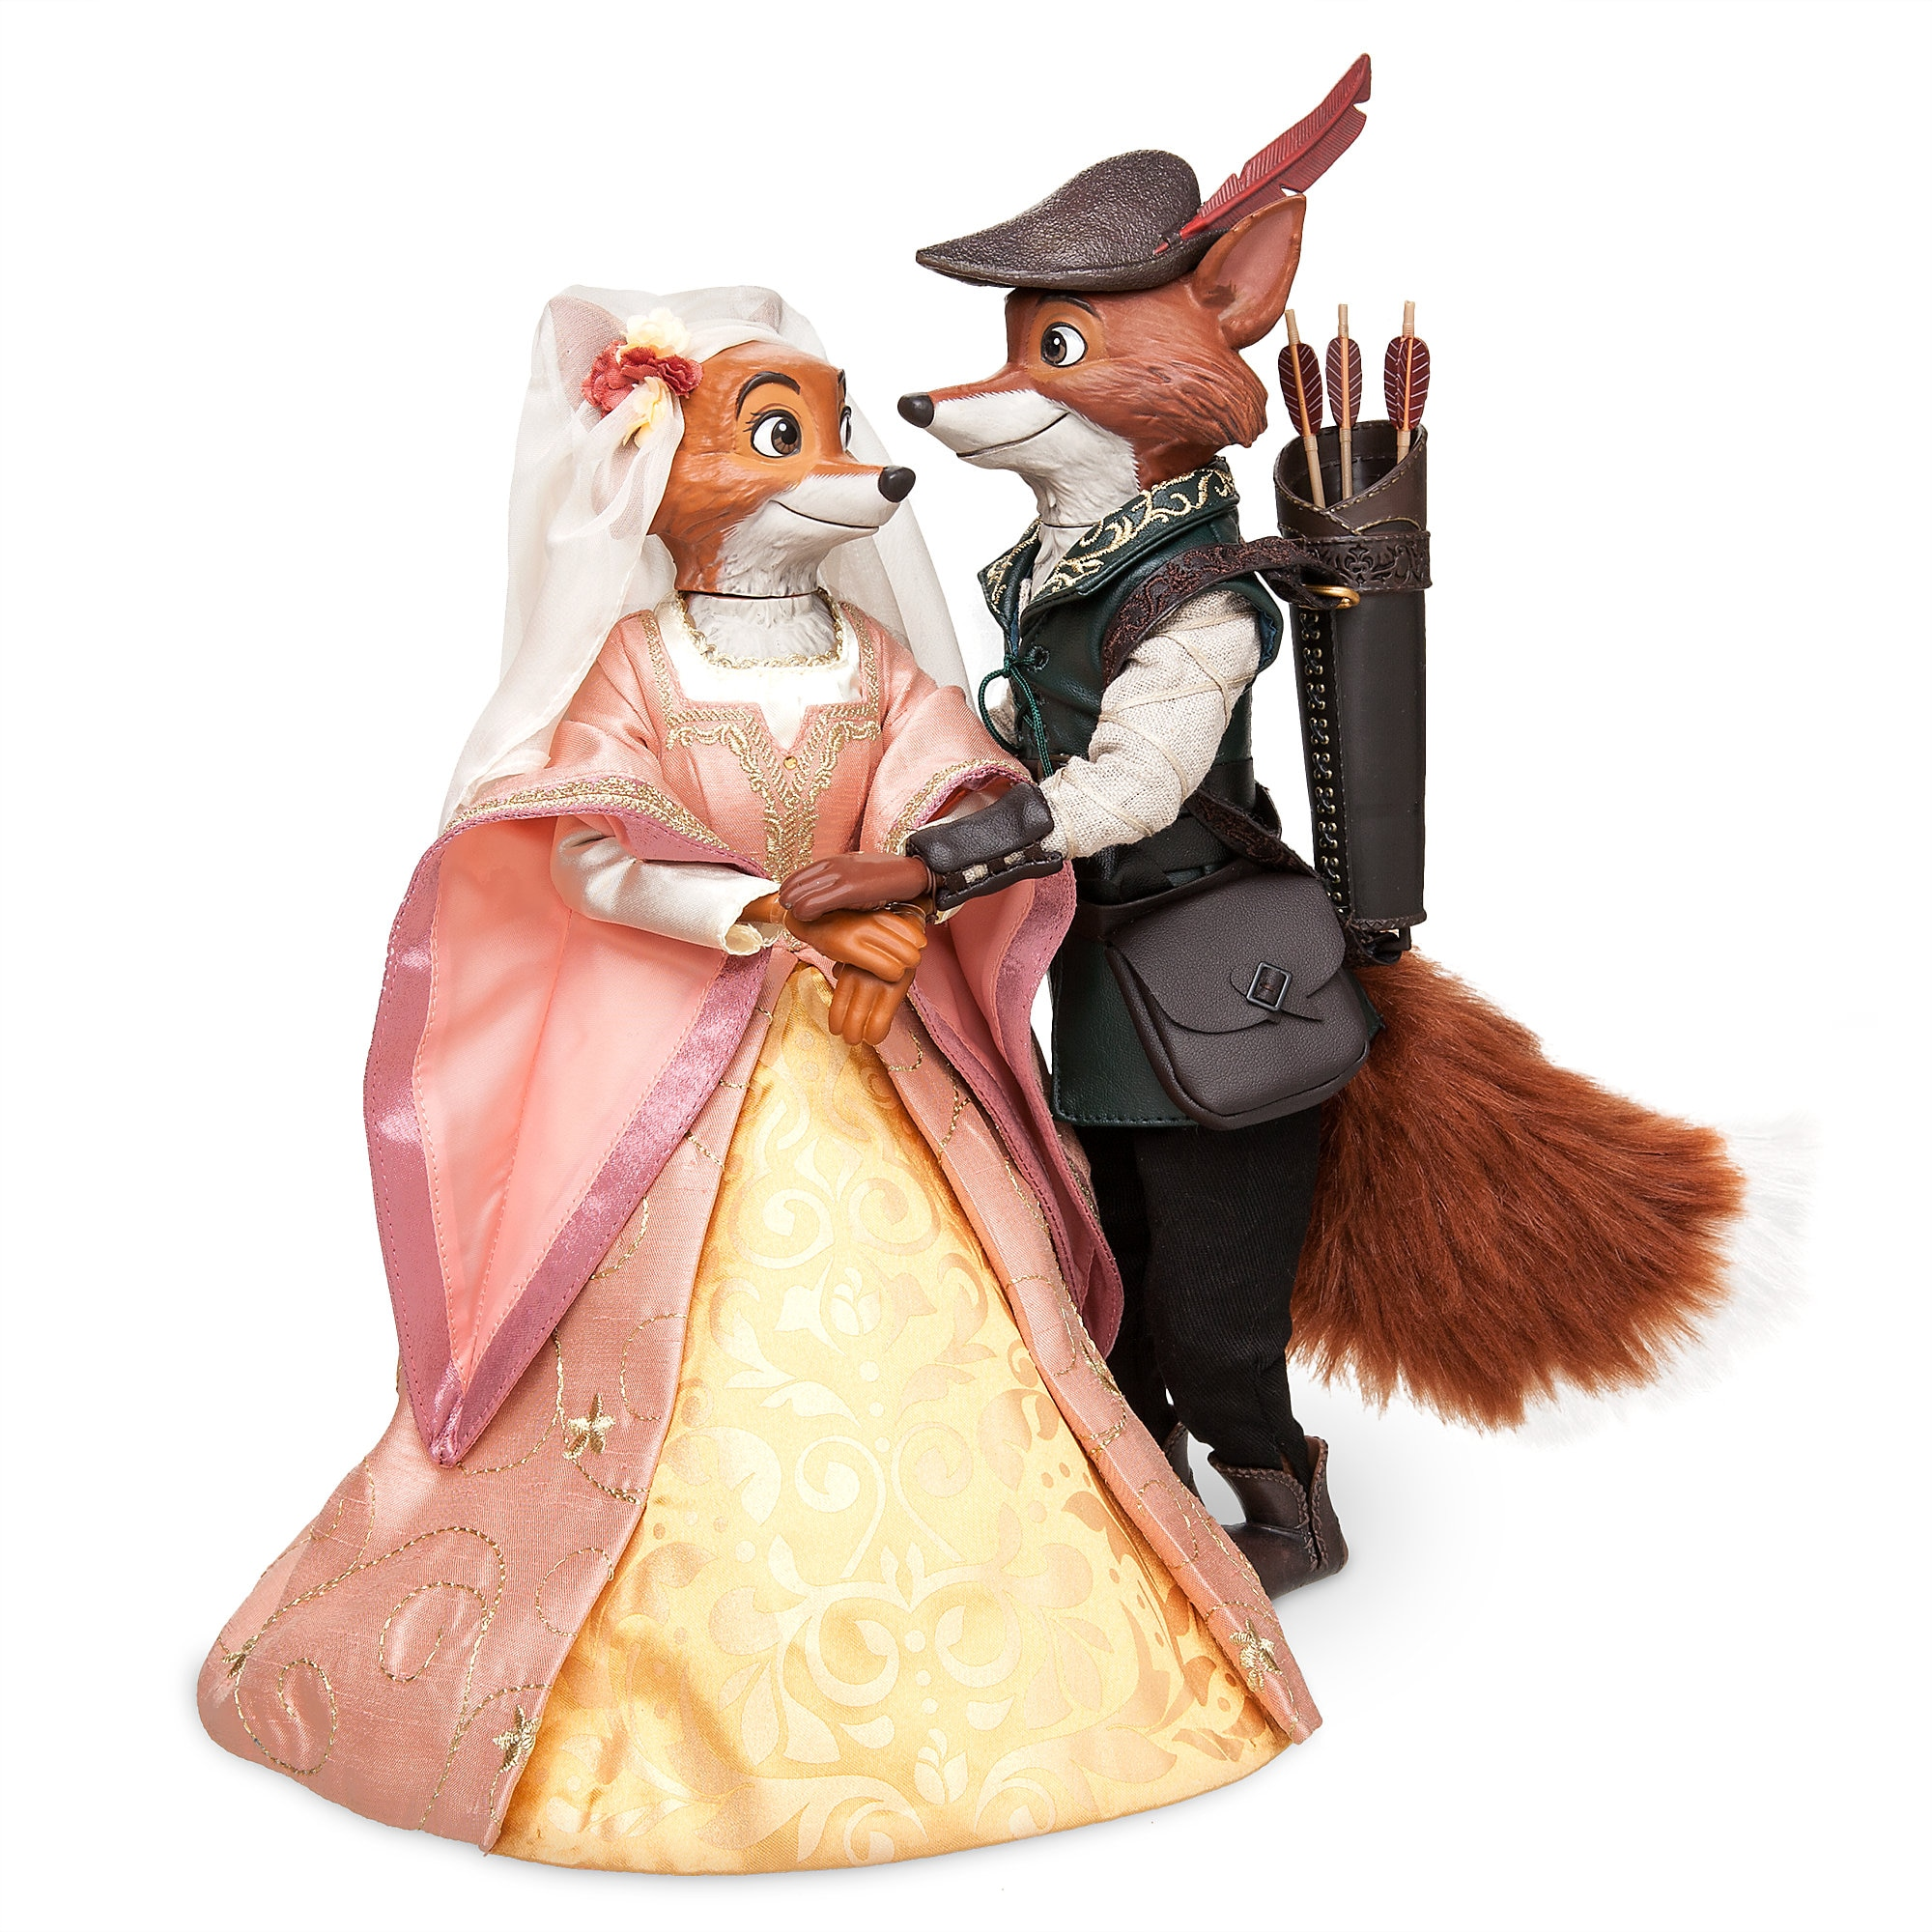 Product Image of Robin Hood and Maid Marian Doll Set - Disney Designer Fairytale Collection -  sc 1 st  shopDisney & Robin Hood and Maid Marian Doll Set - Disney Designer Fairytale ...